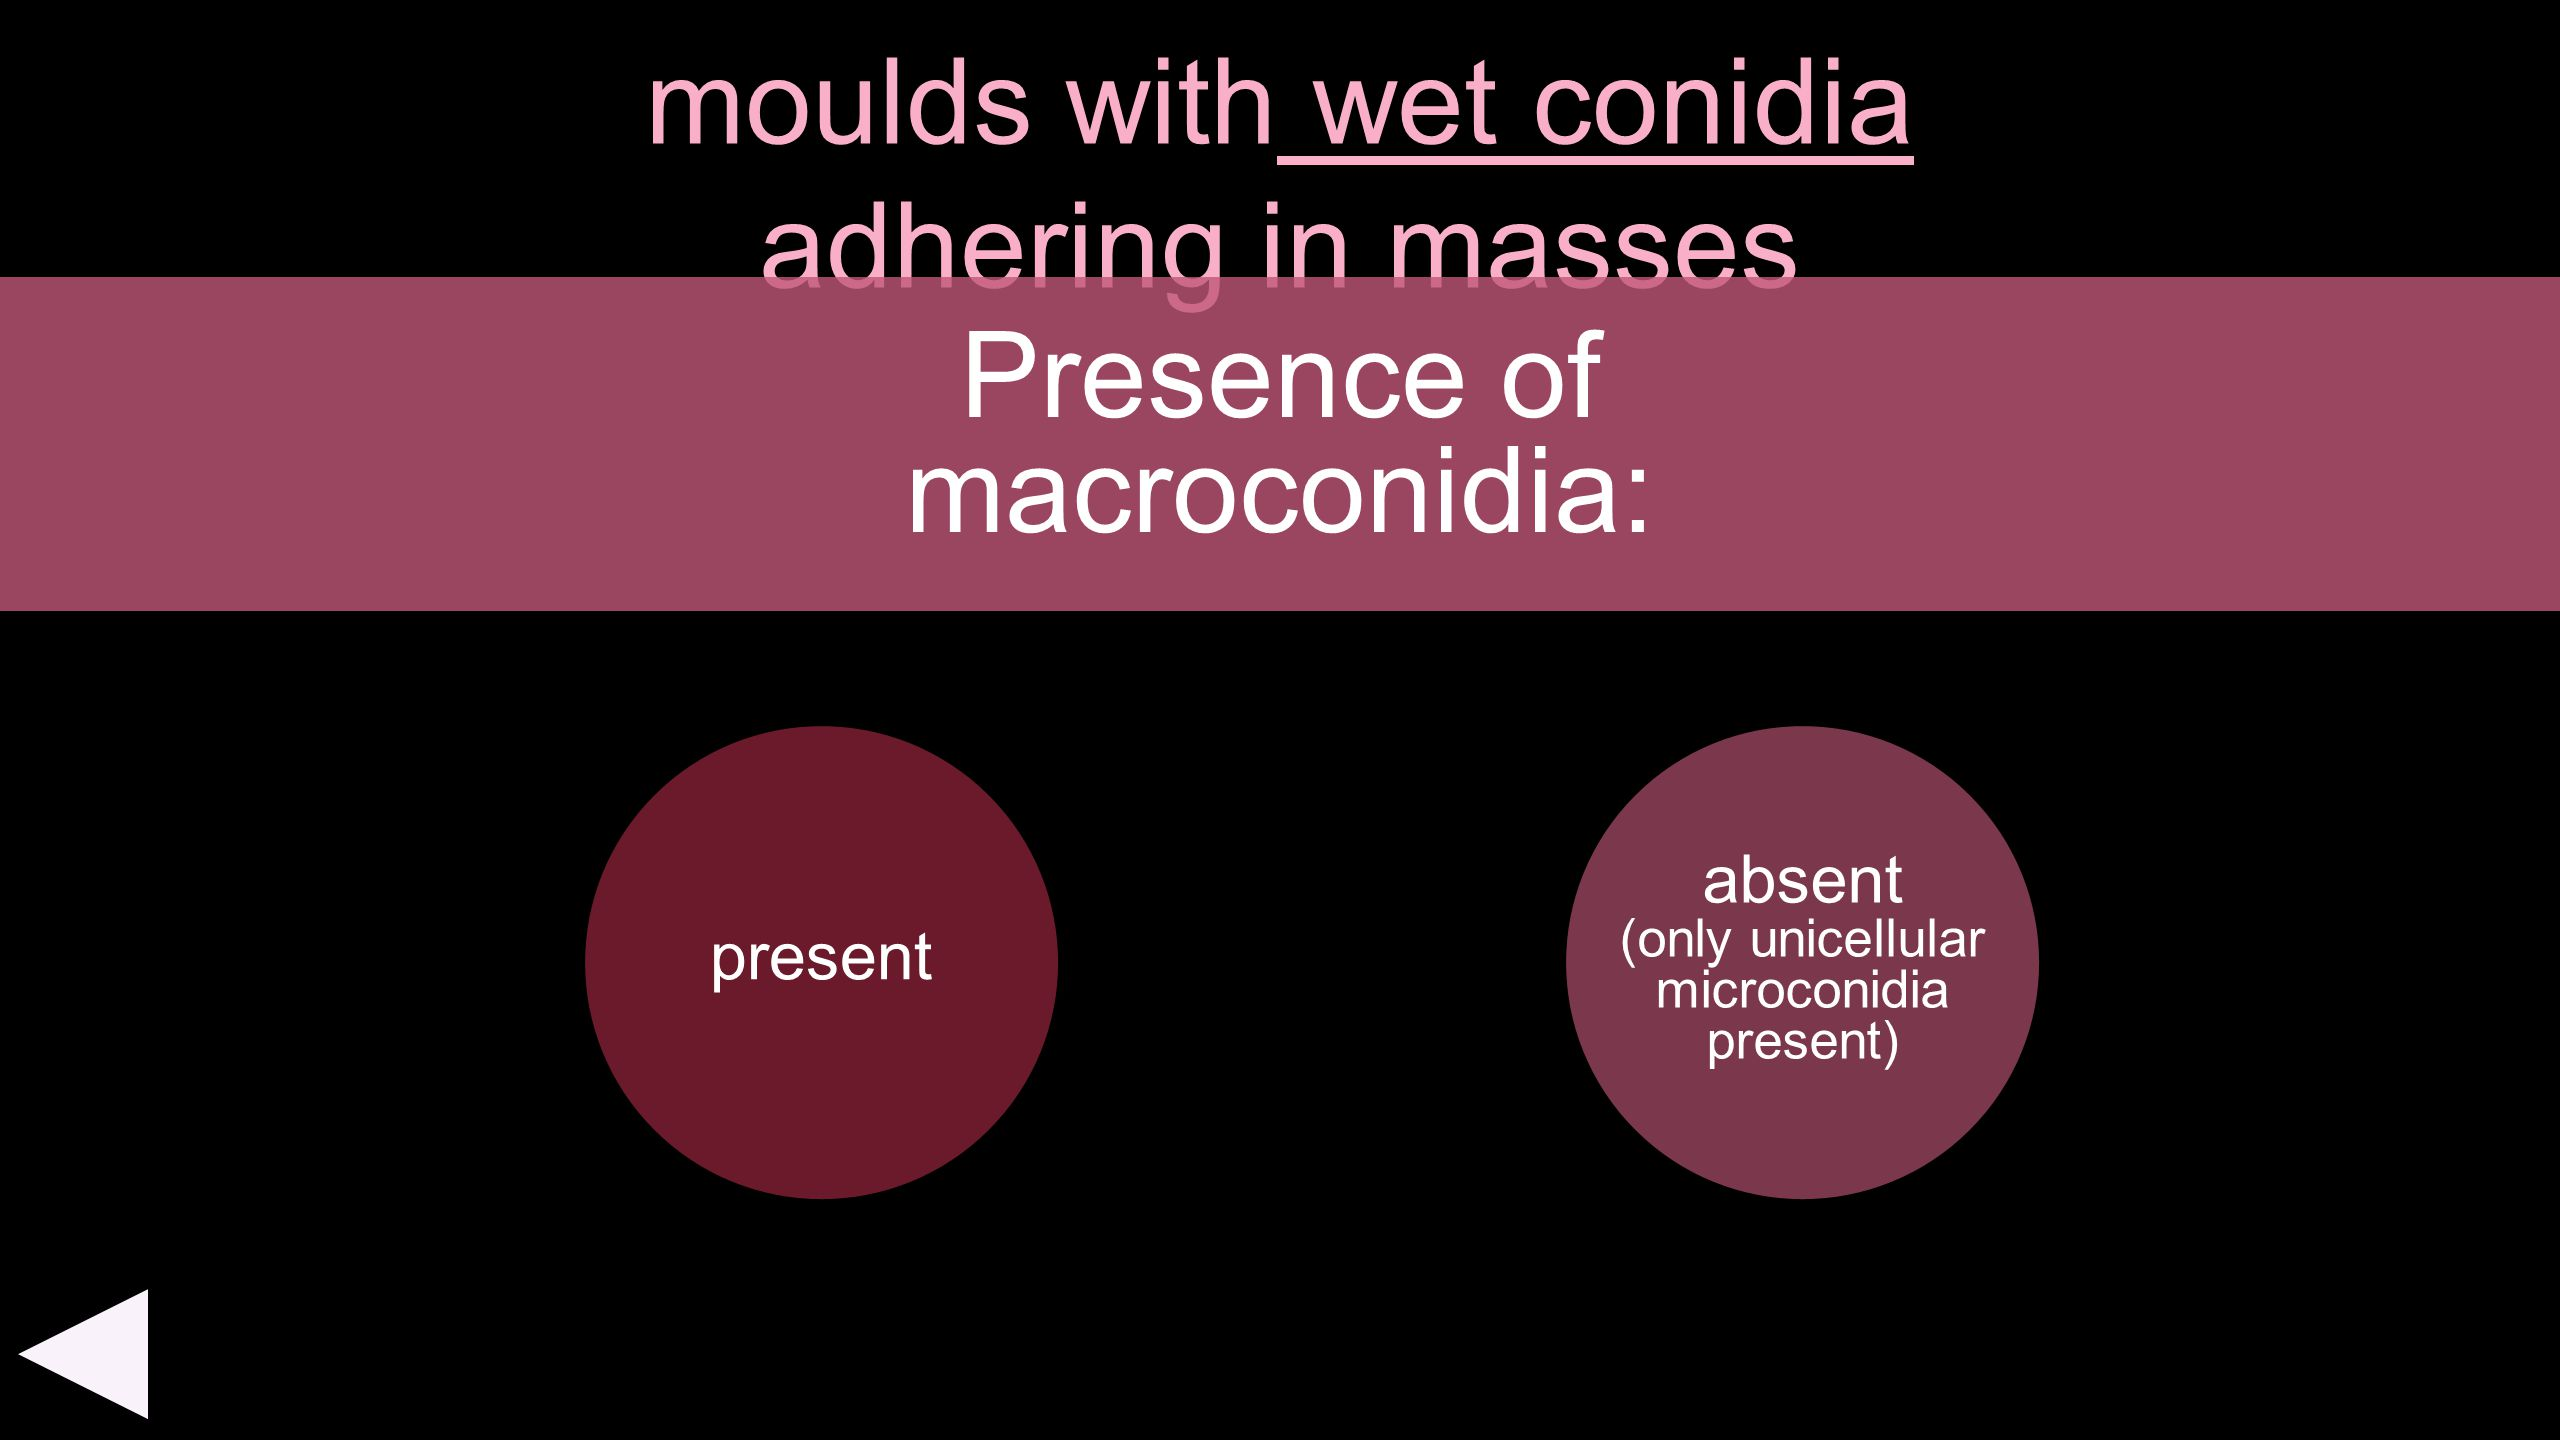 moulds with wet conidia adhering in masses present Presence of macroconidia: absent (only unicellular microconidia present)